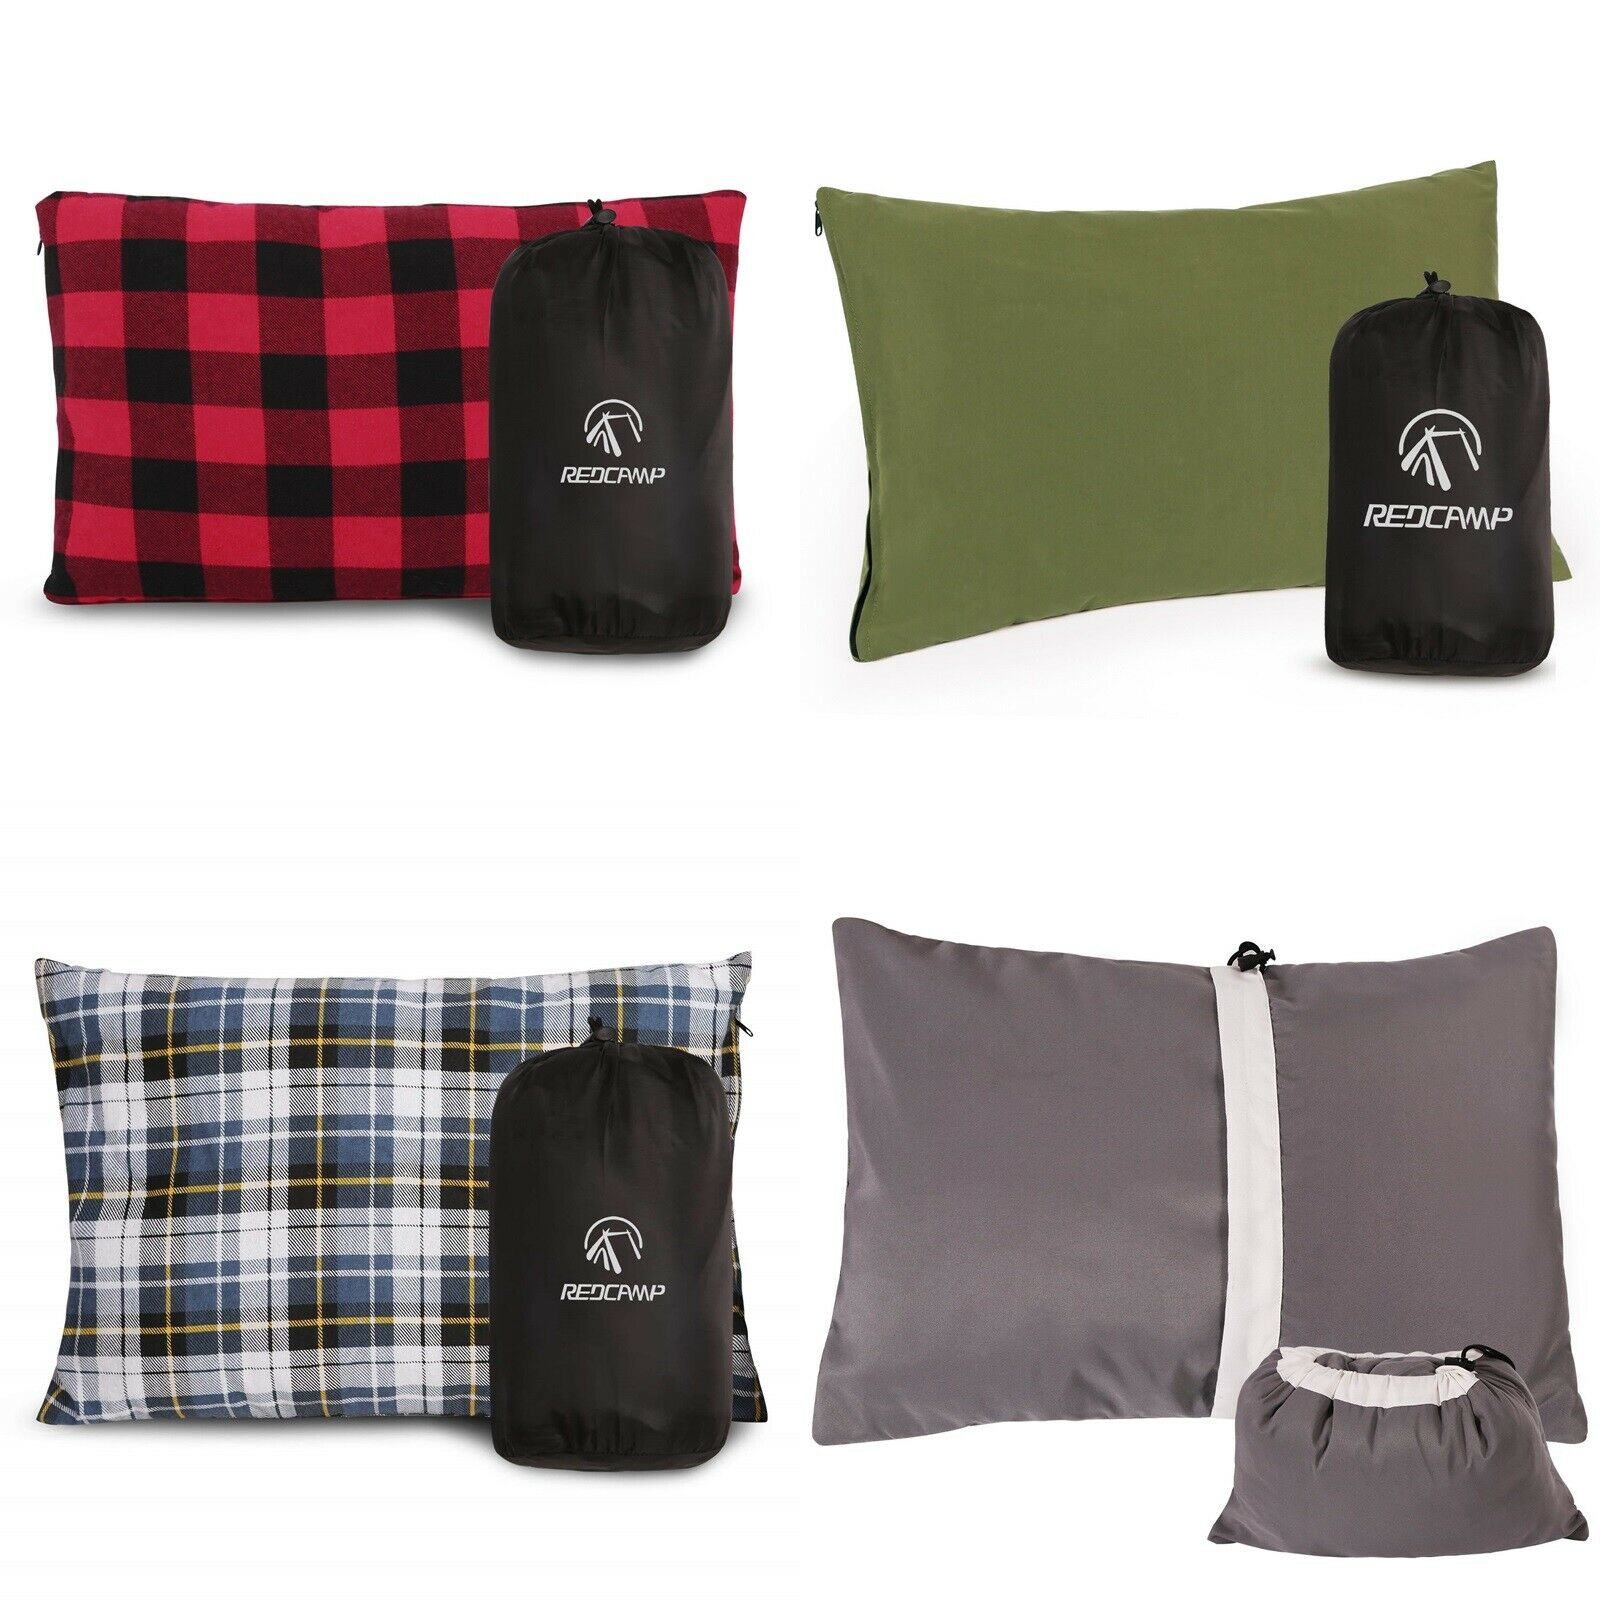 REDCAMP 1/2 Packs Lightweight Compressible Camping Pillow for Travel B...